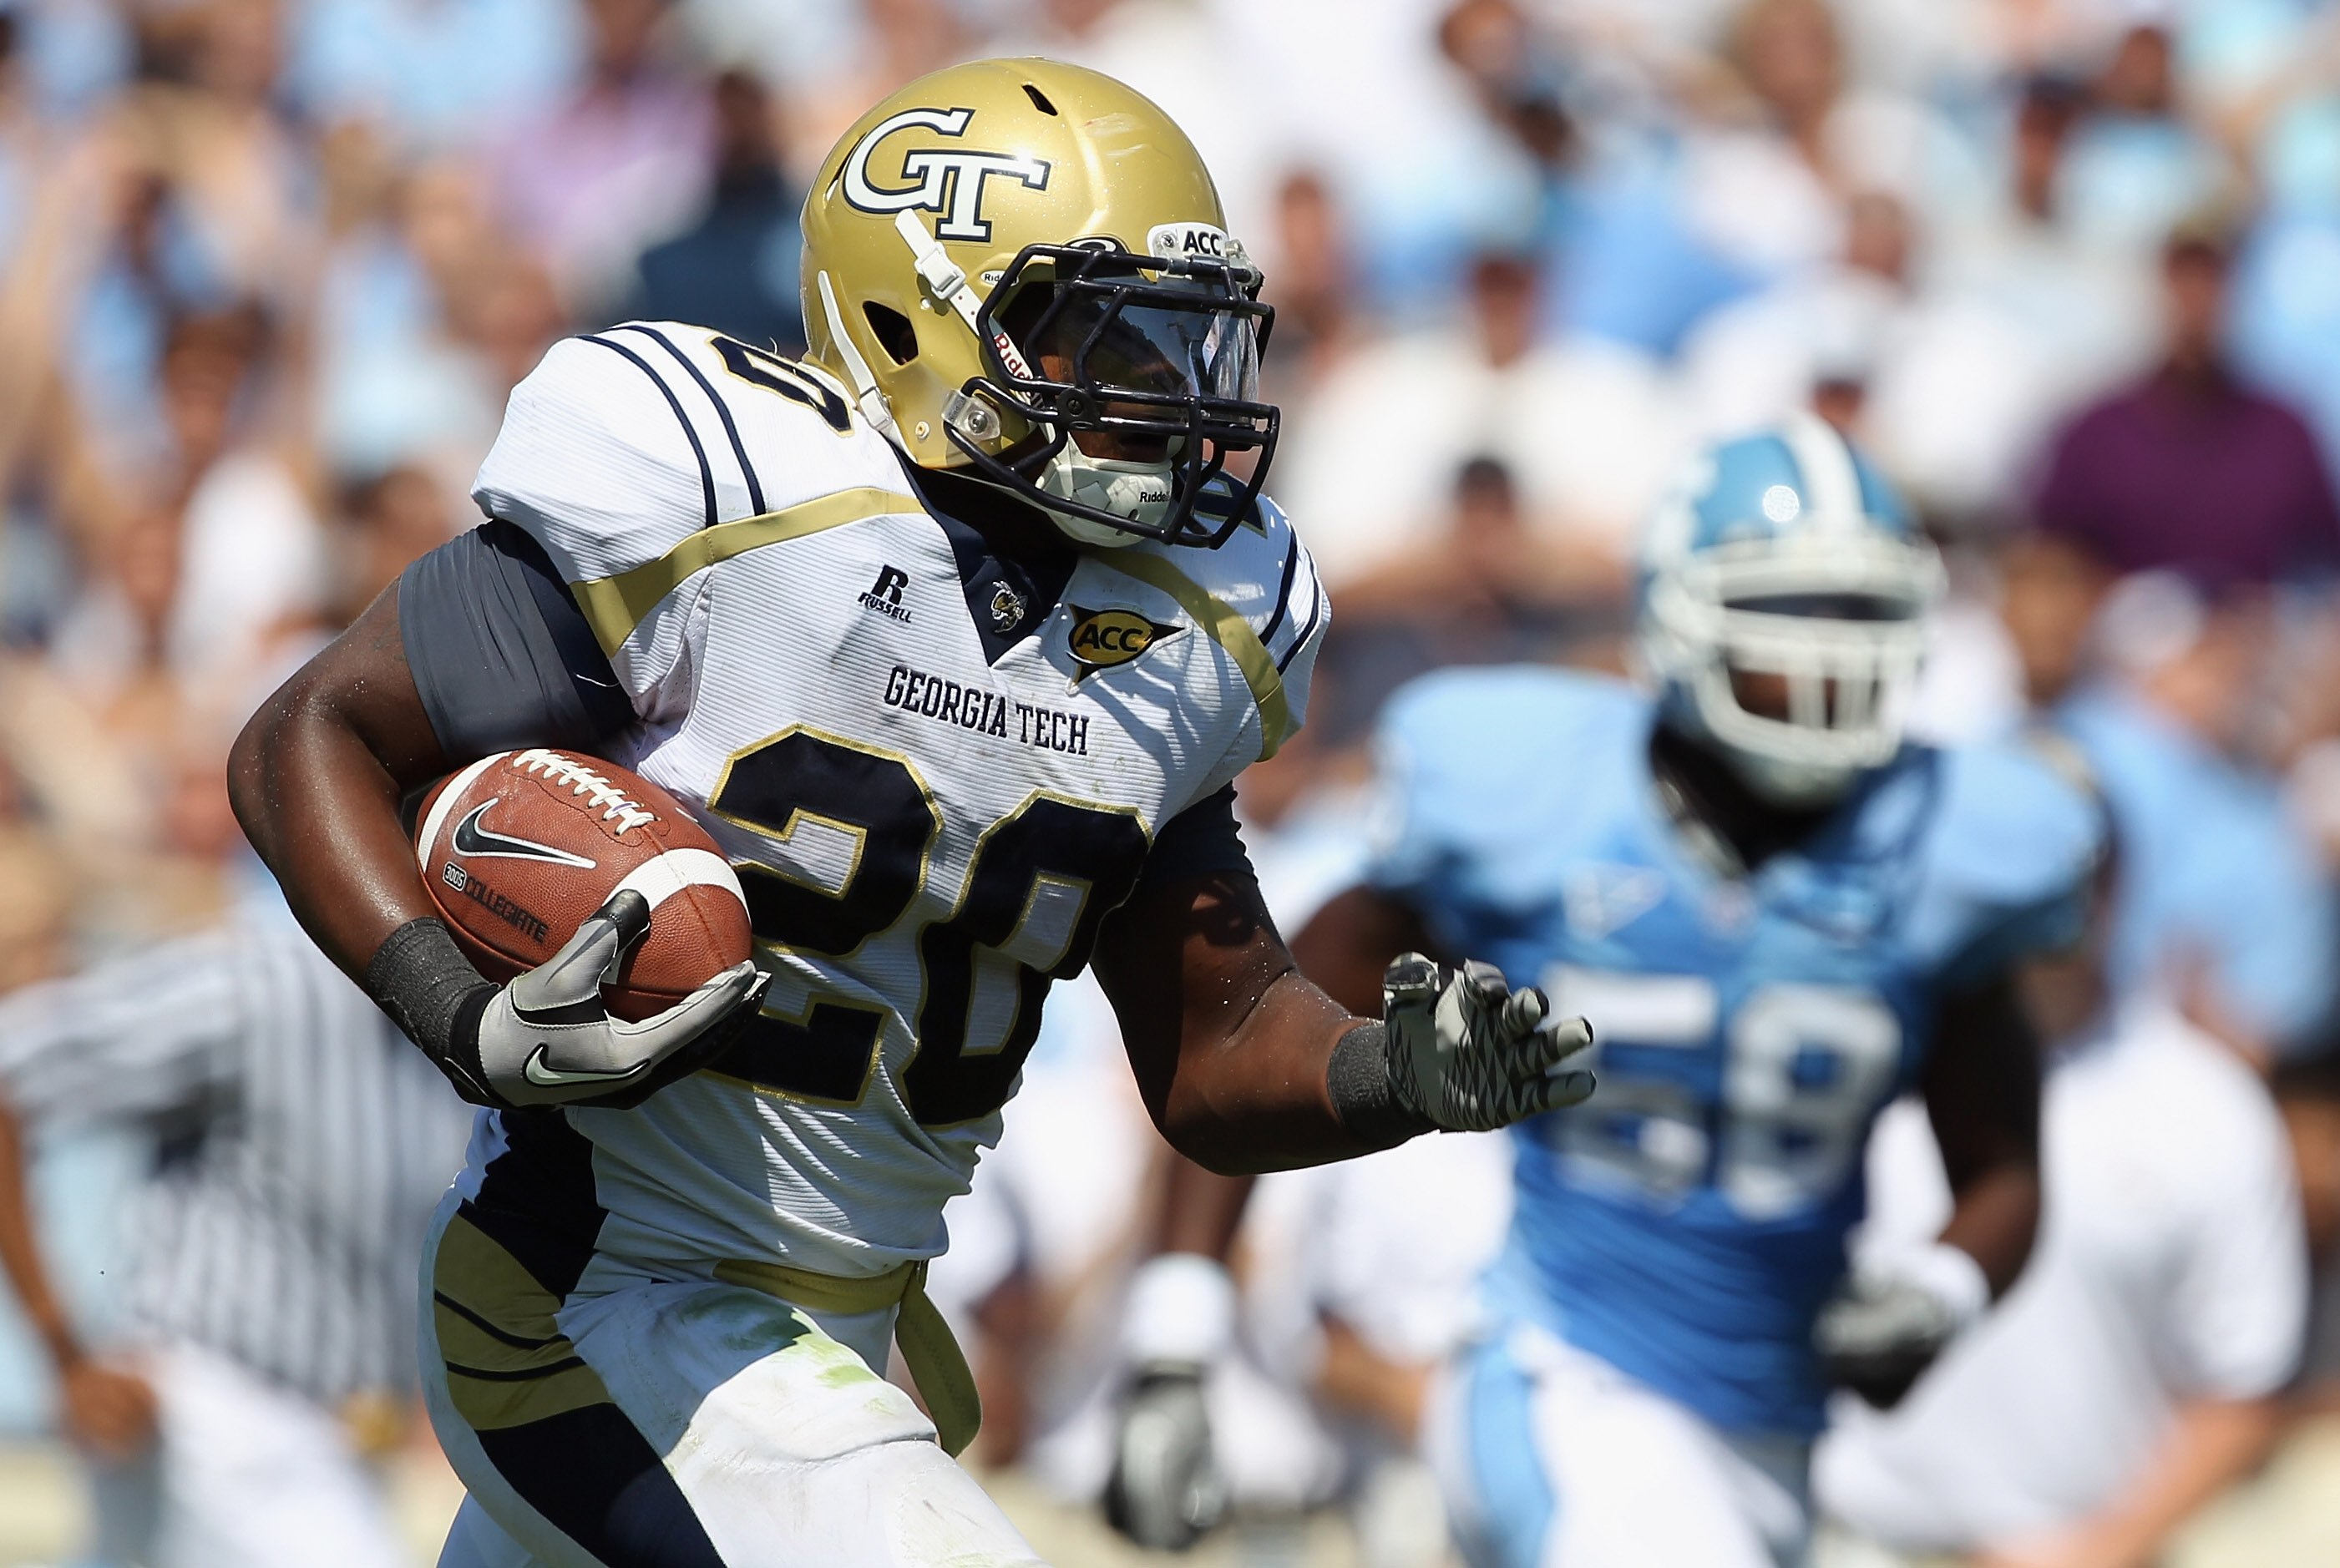 CHAPEL HILL, NC - SEPTEMBER 18:  Roddy Jones #20 of the Georgia Tech Yellow Jackets against the North Carolina Tar Heels during their game at Kenan Stadium on September 18, 2010 in Chapel Hill, North Carolina.  (Photo by Streeter Lecka/Getty Images)